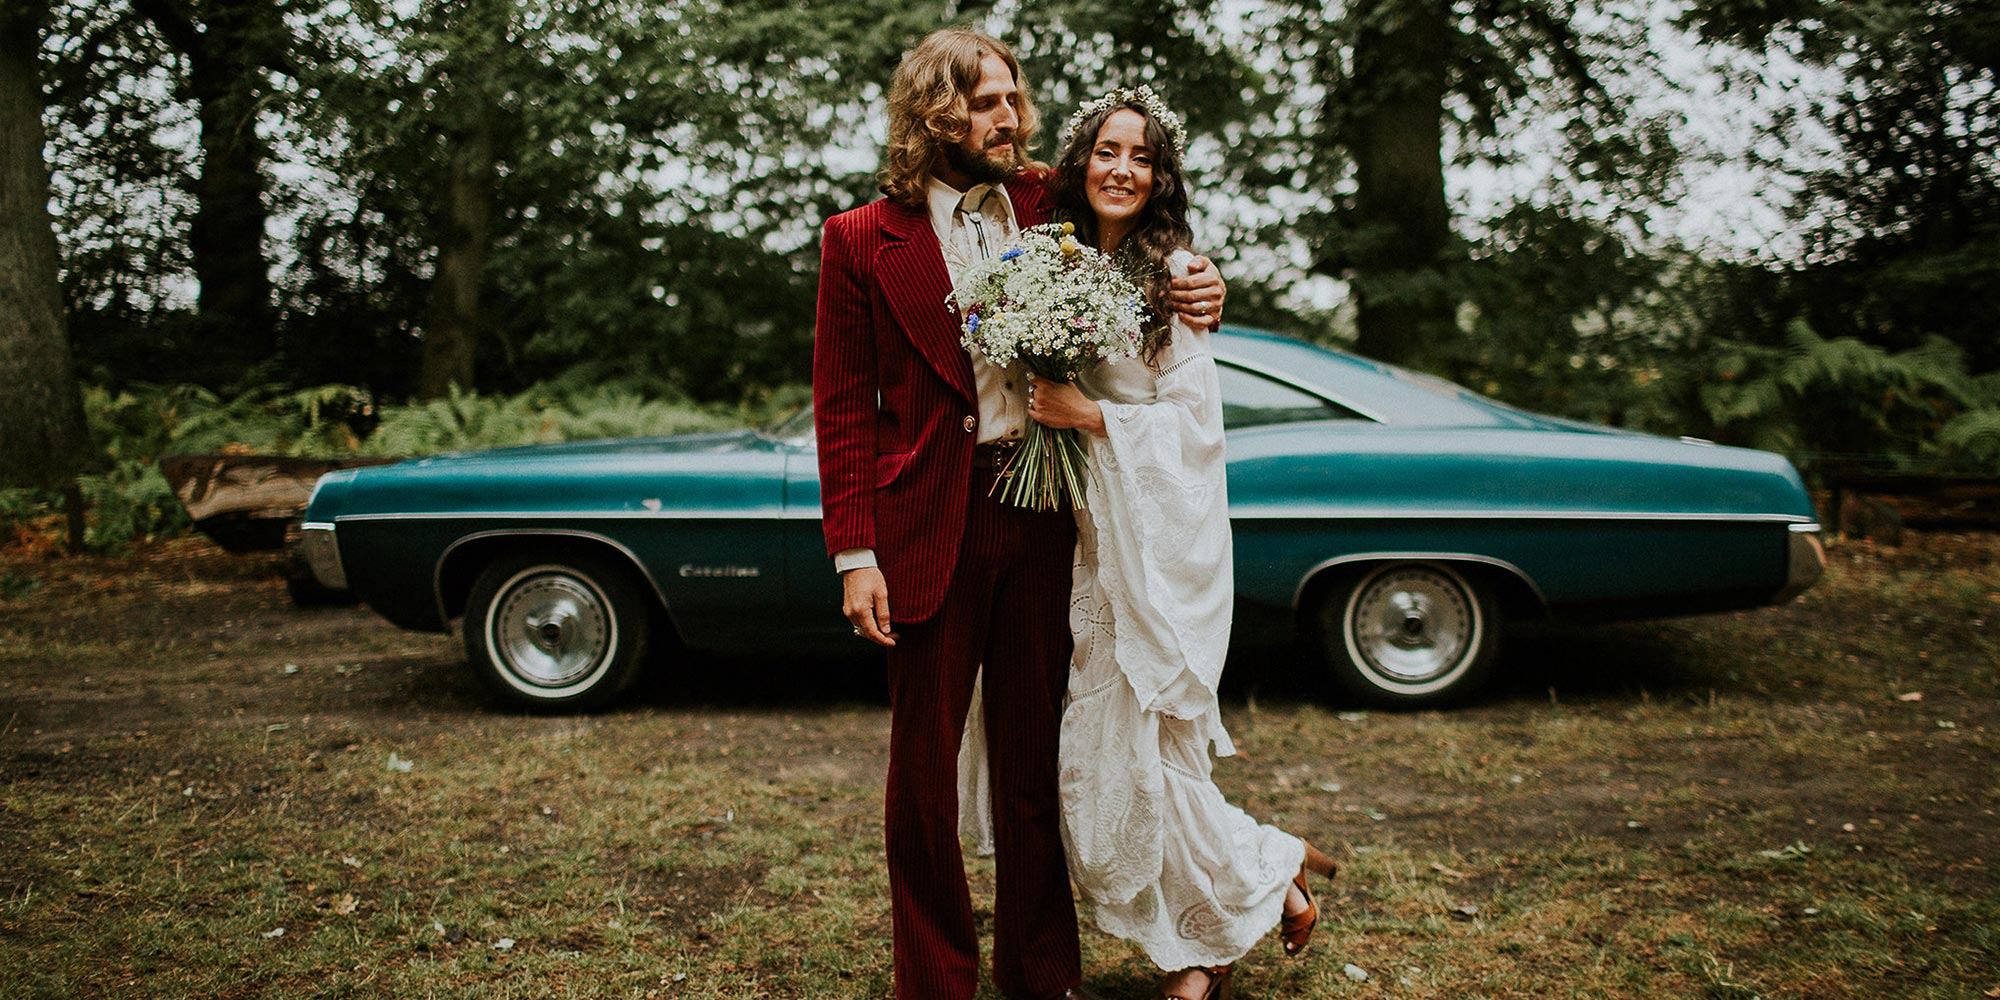 Just married couple with vintage car in background | Humanist Wedding Celebrant Laura Gimson